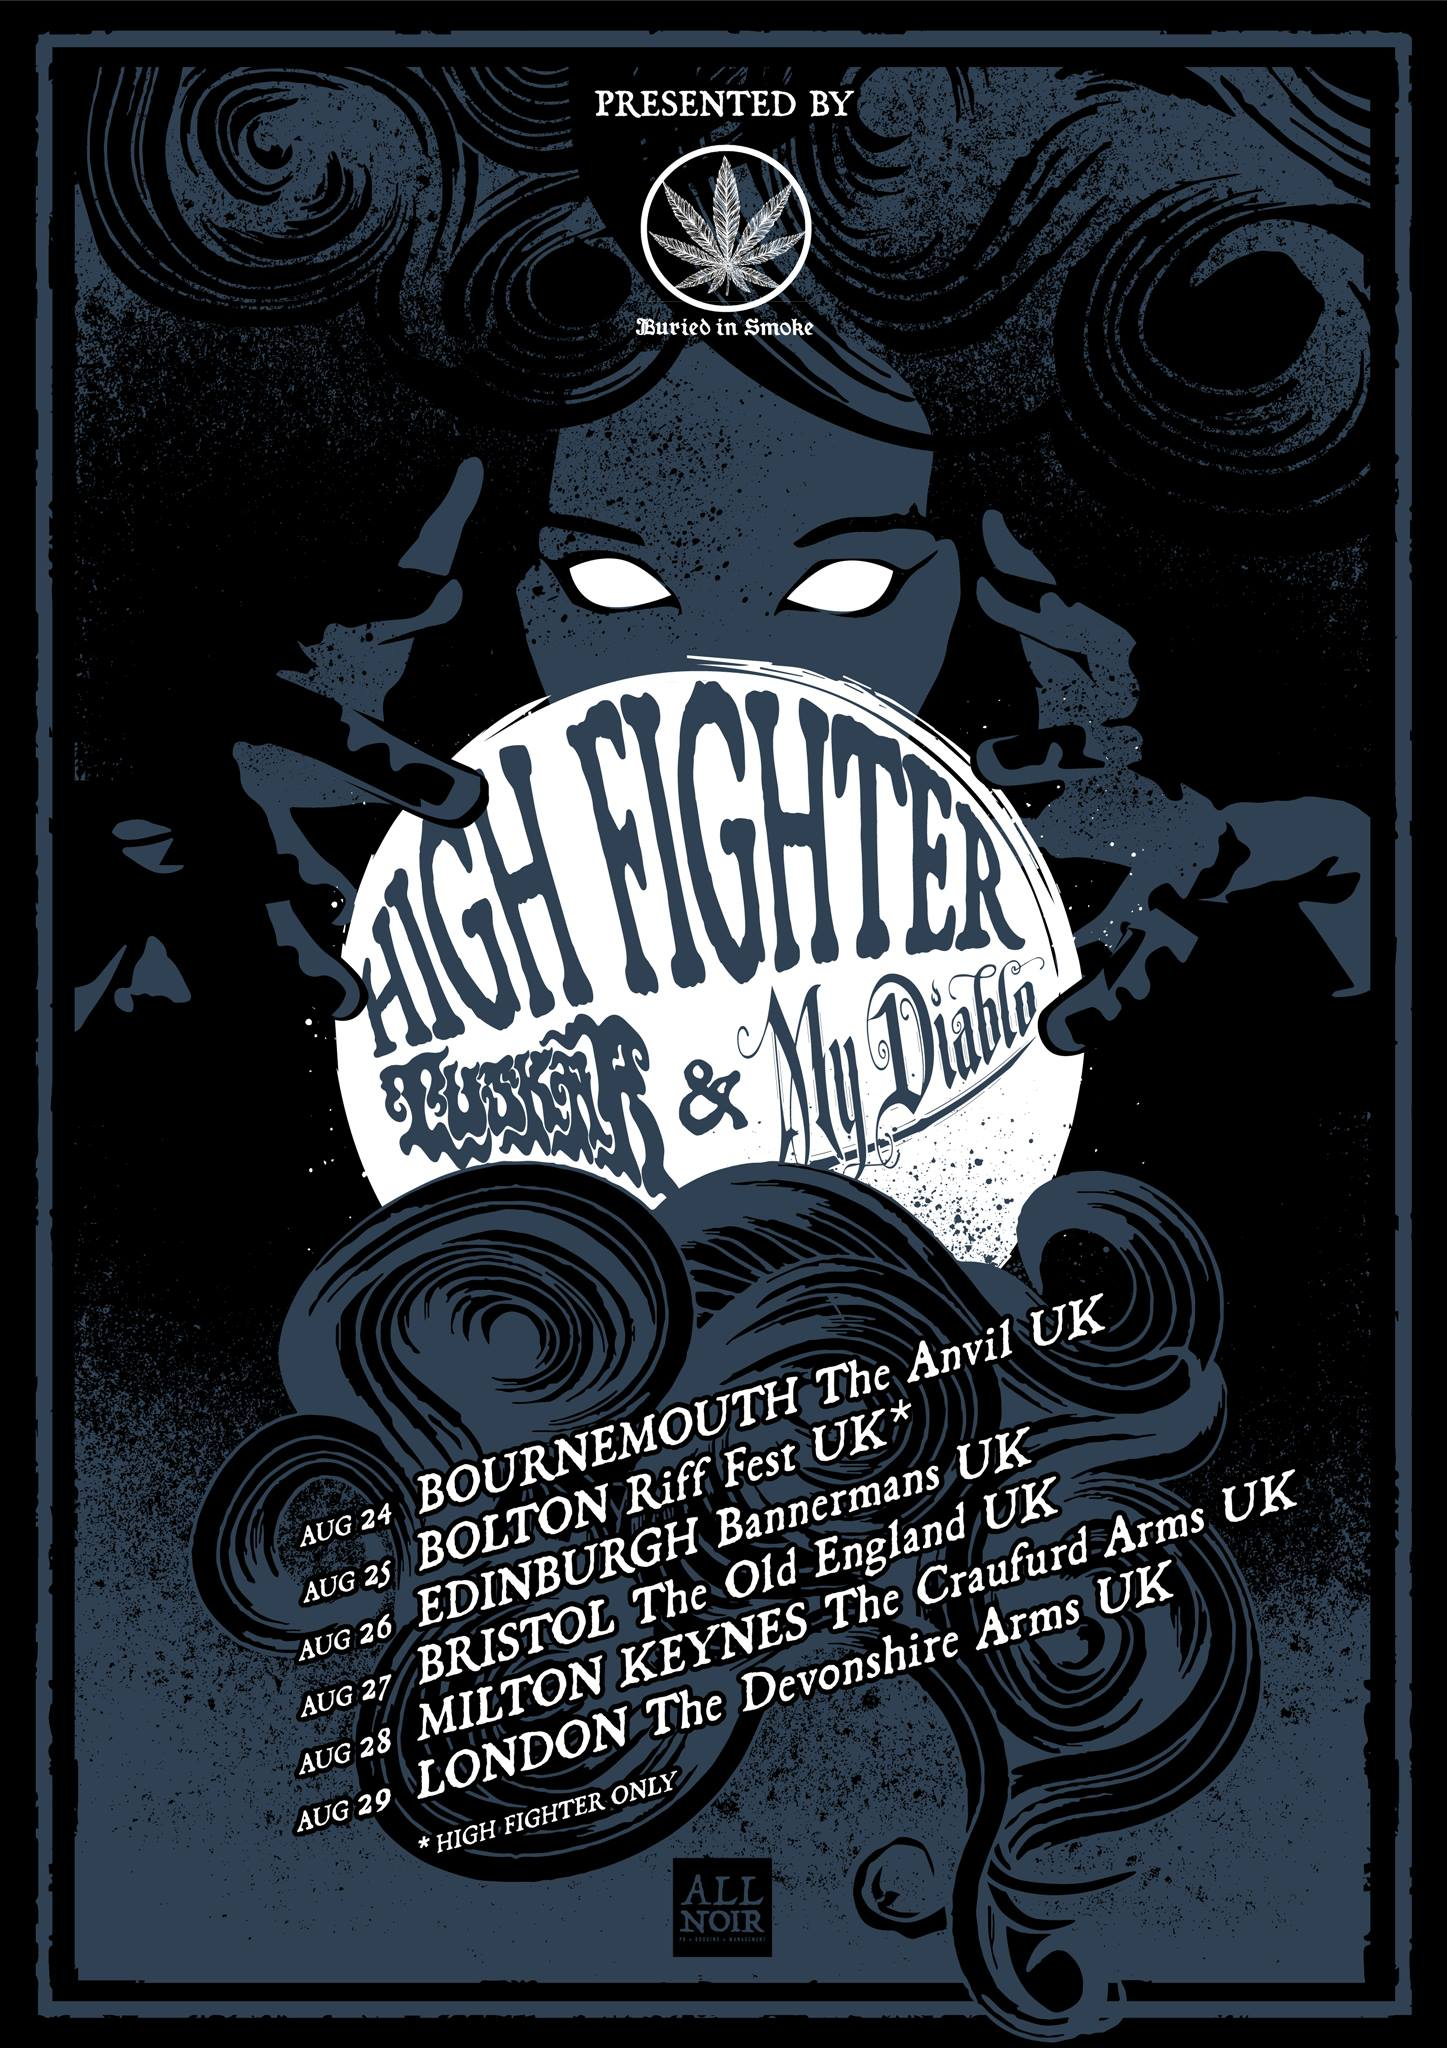 high fighter tour poster